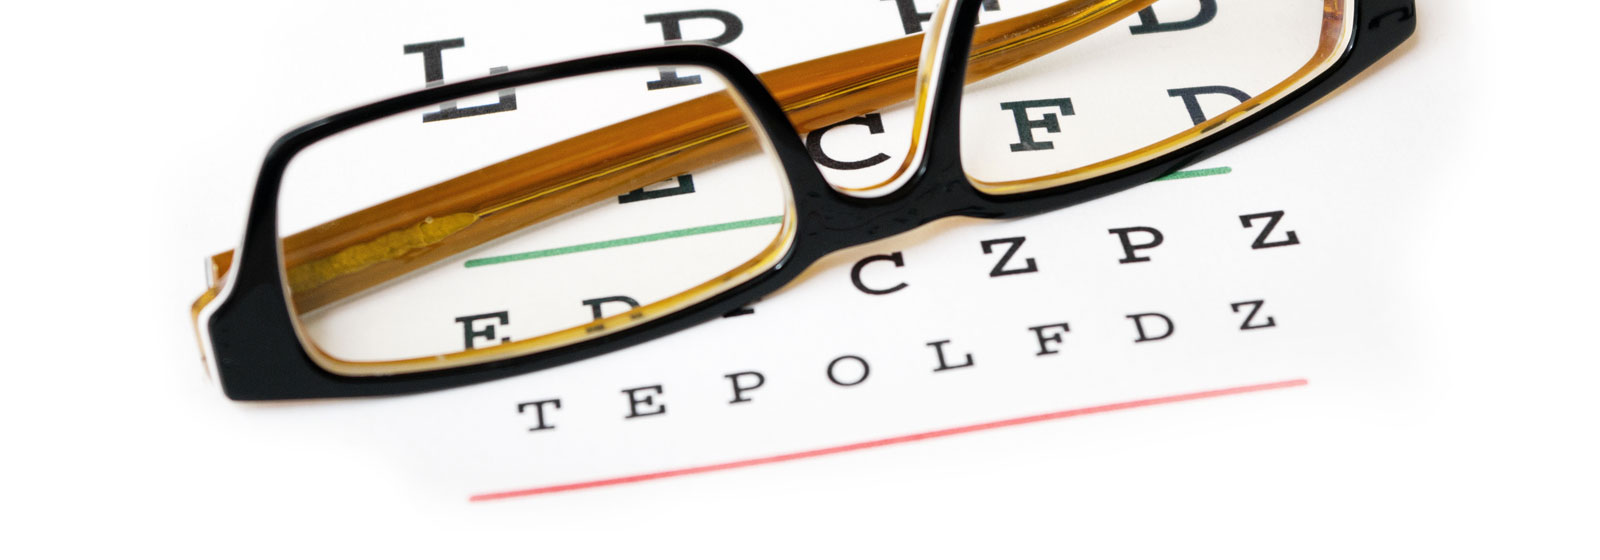 eye glasses on an eye chart